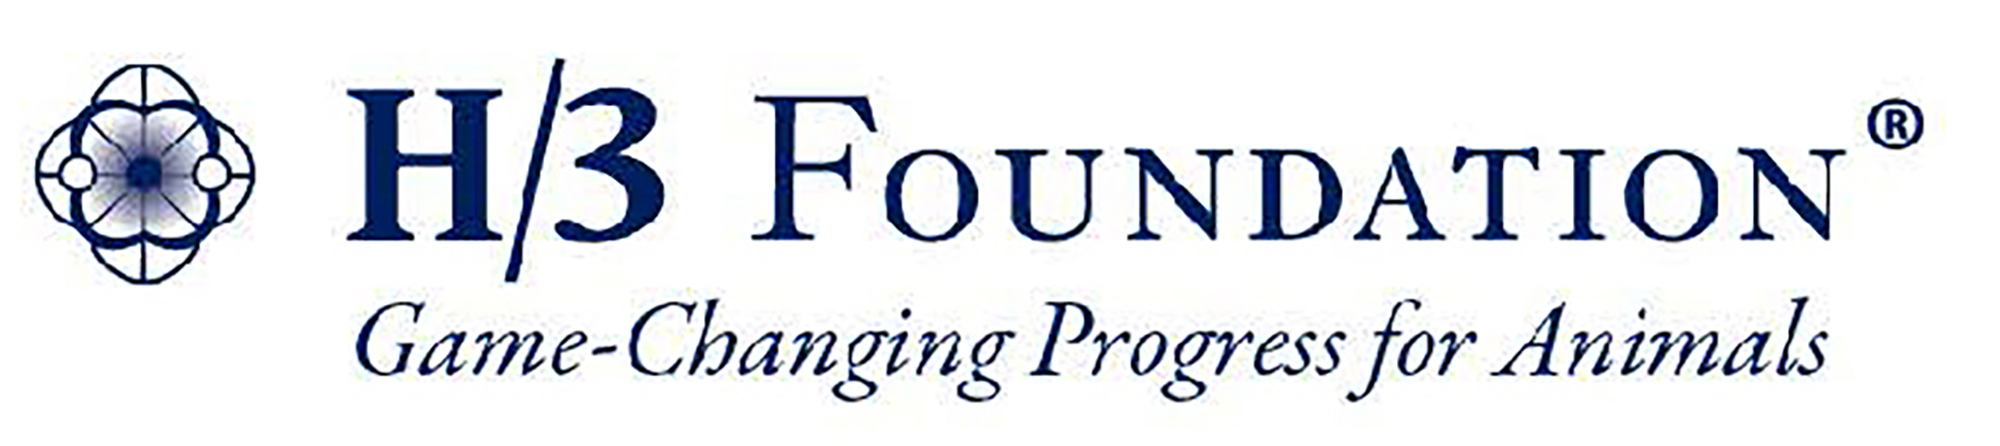 H3 FF donation Press Release_Page_logos.jpg